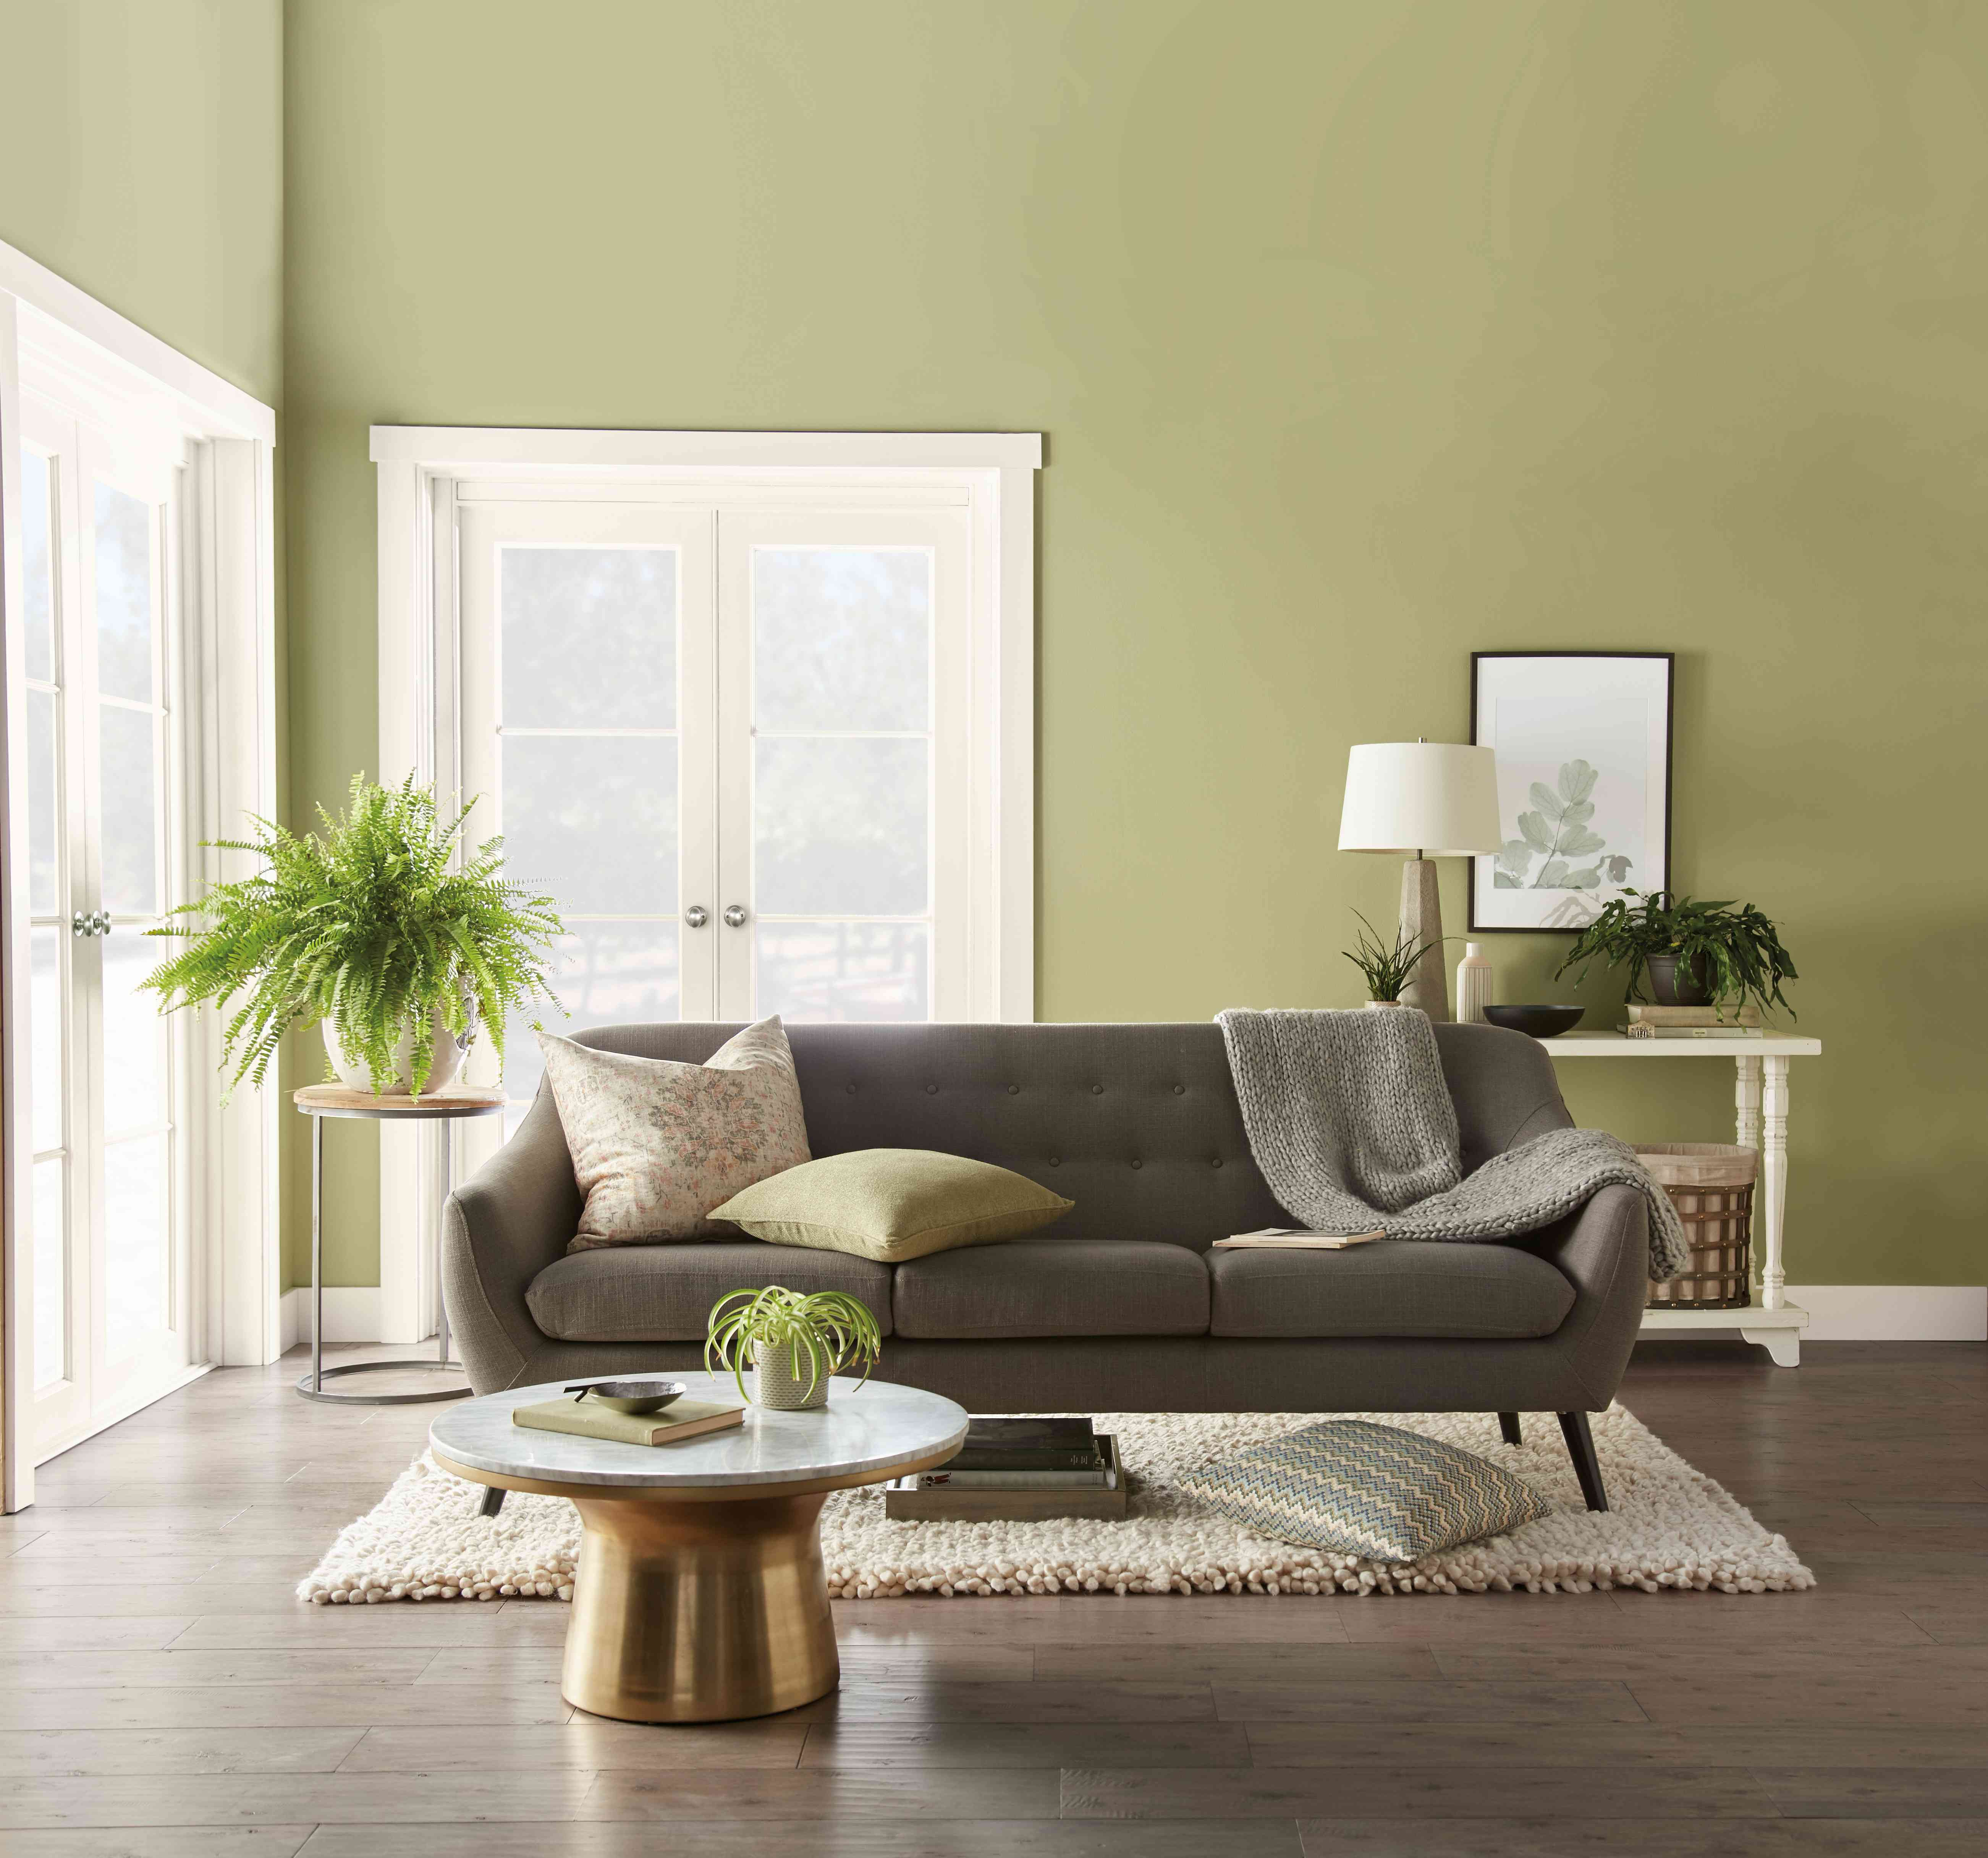 Interior Paint Colors 2020.Behr Color Of The Year 2020 Back To Nature